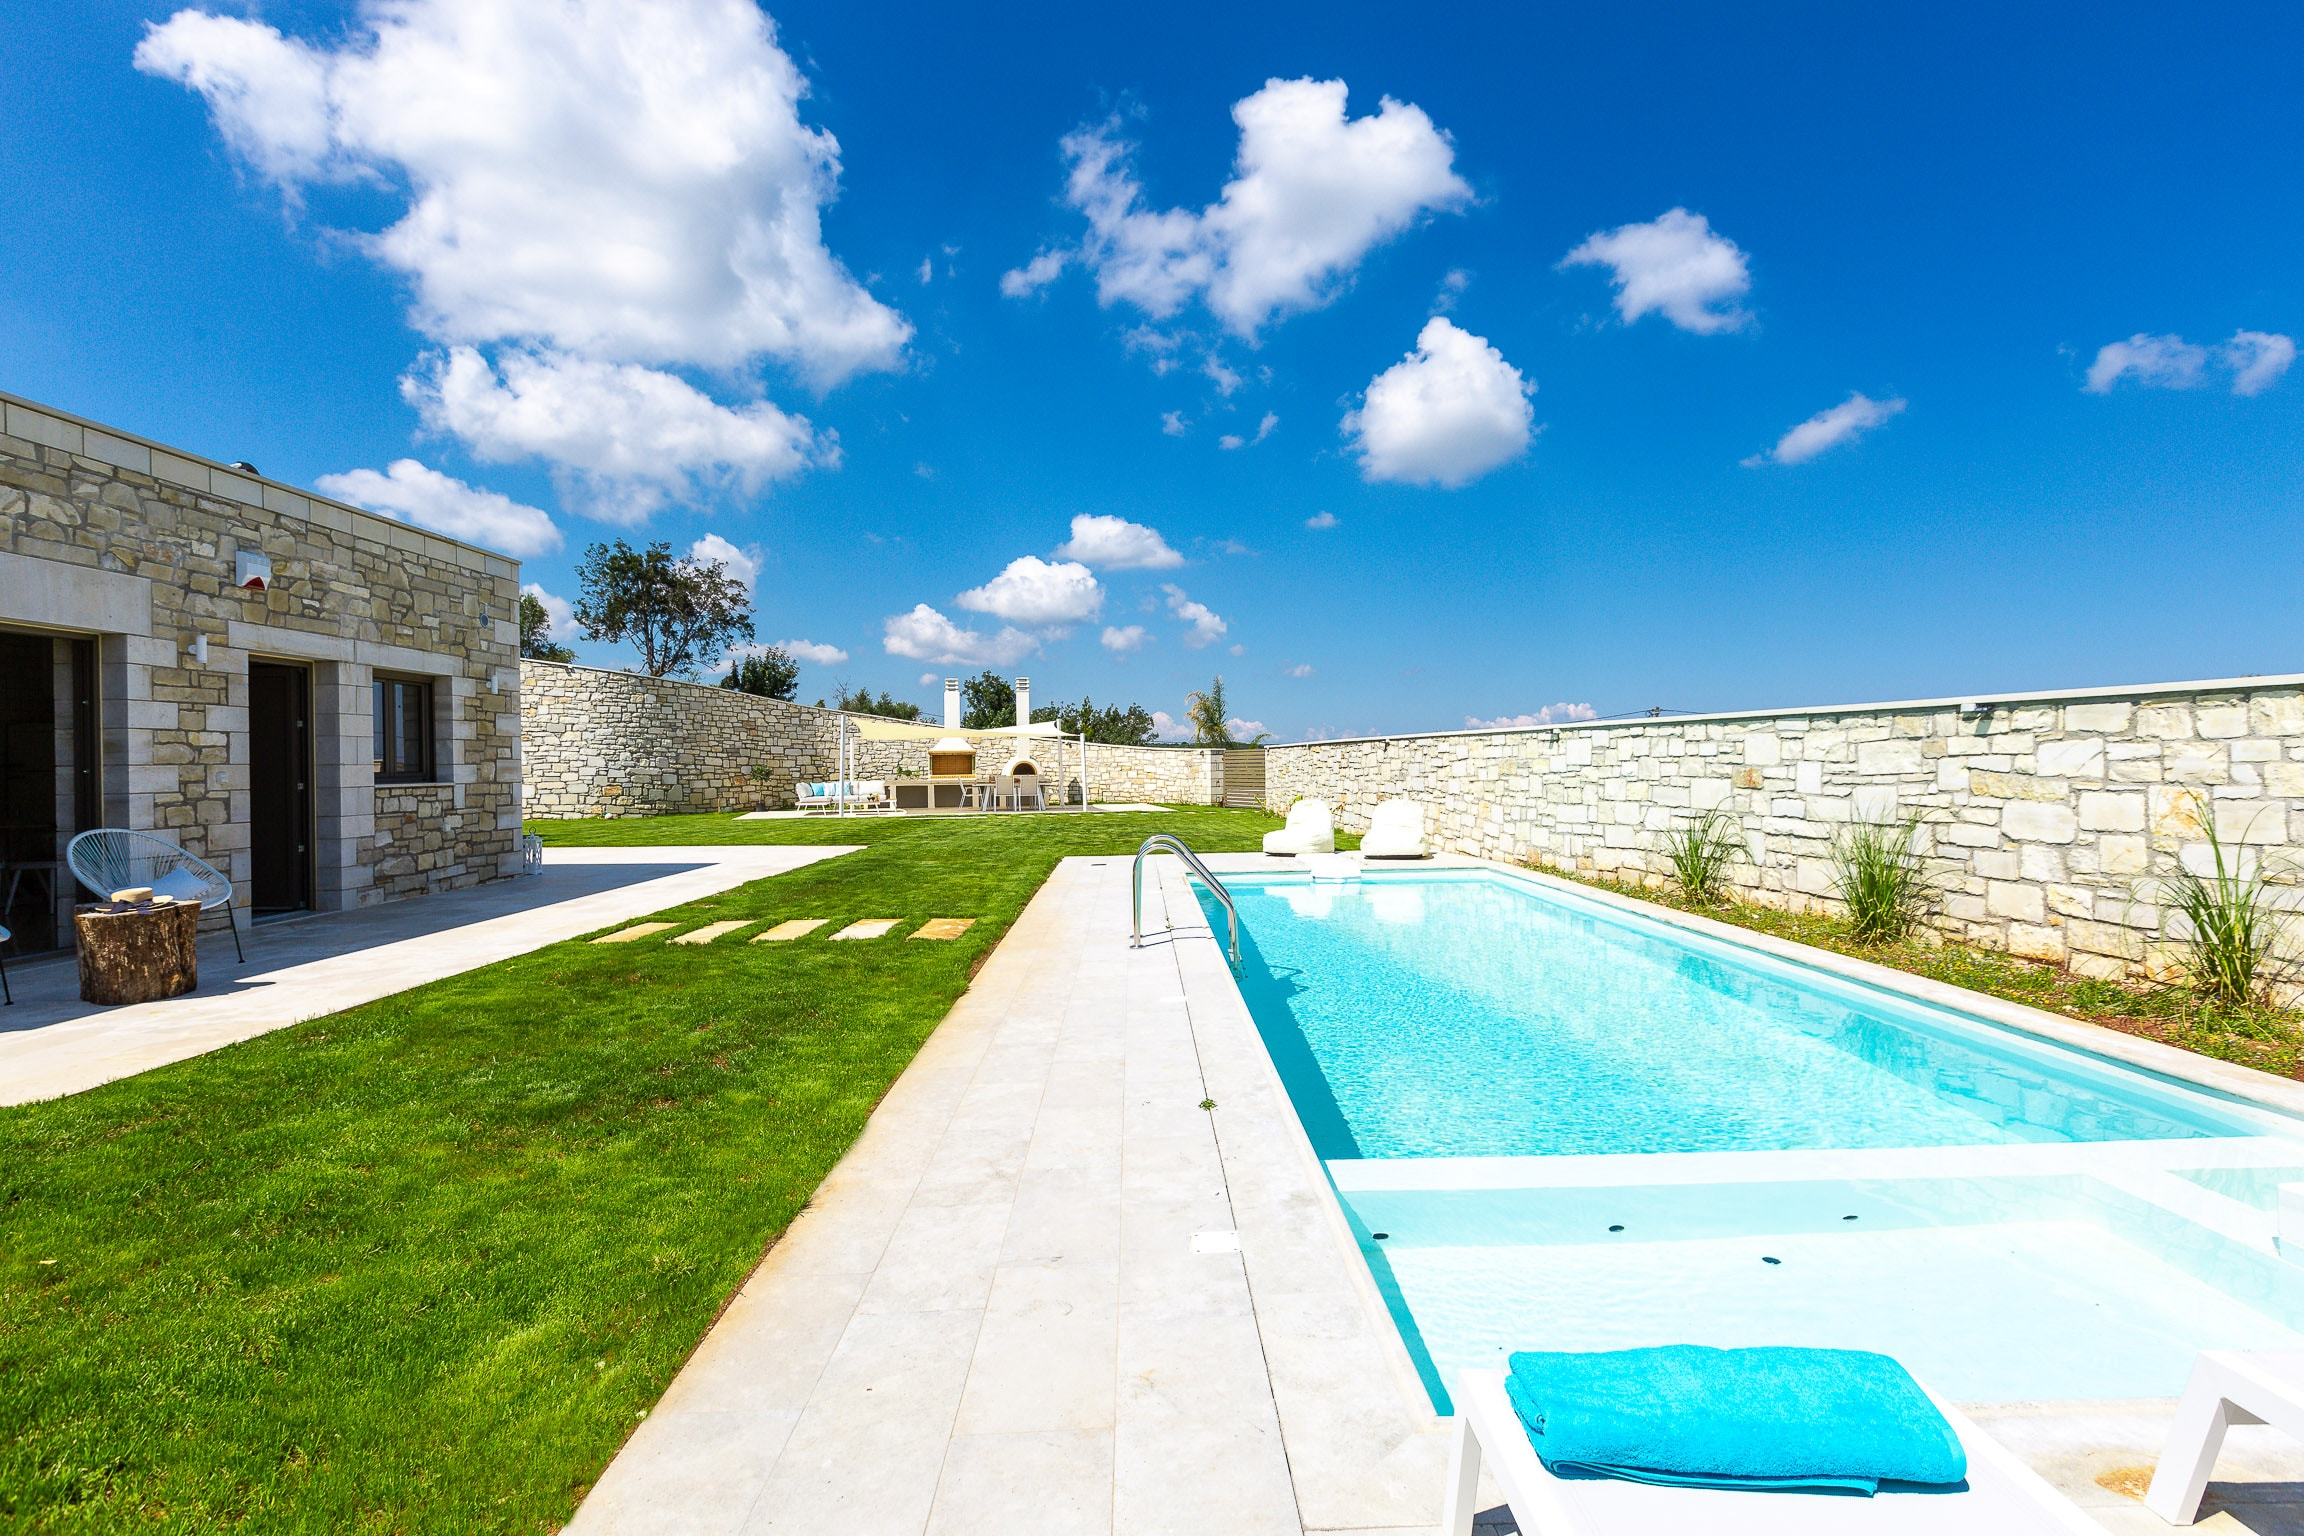 Captivating Polished Villa with Private Pool & Spa Whirlpool